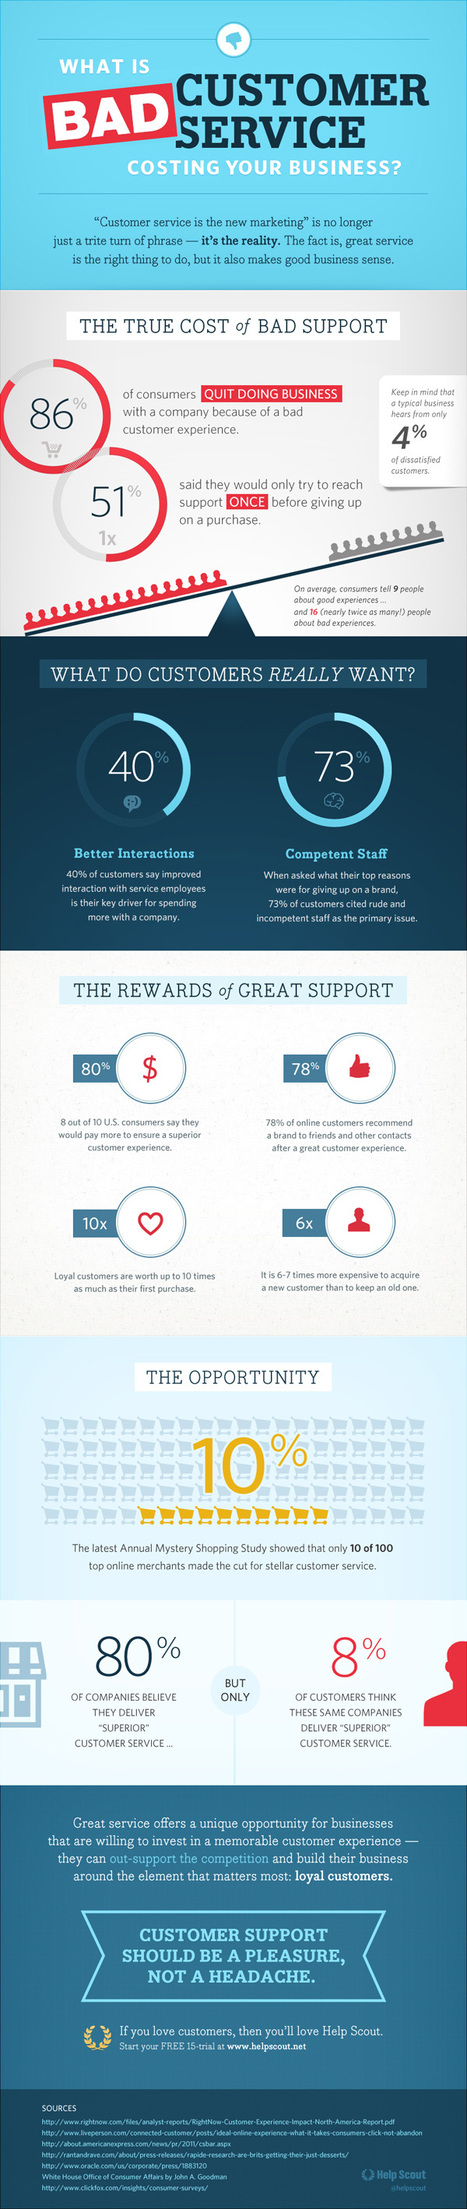 The True Cost Of Bad Customer Service [Infographic] | MarketingHits | Scoop.it